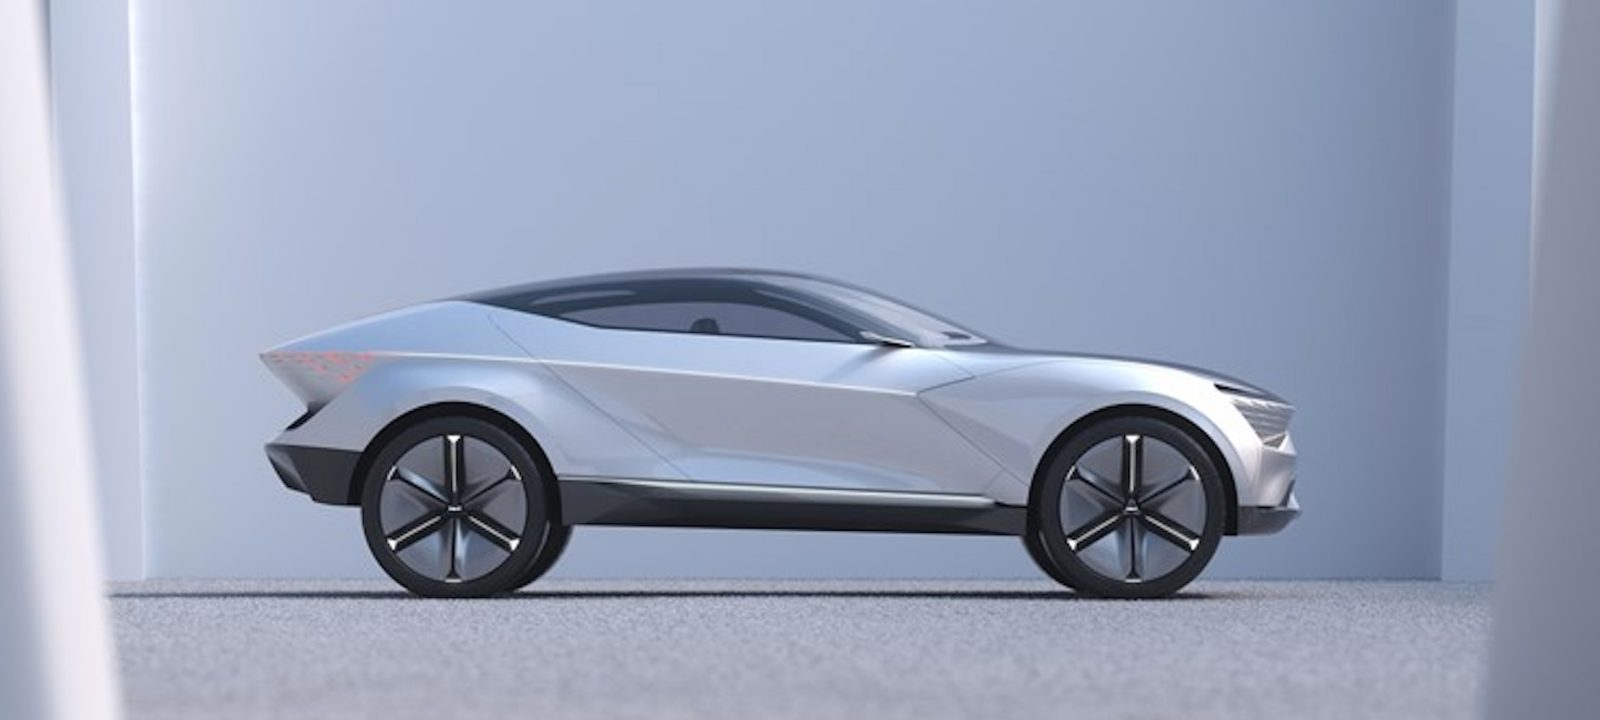 Kia unveils sleek-looking electric SUV concept that you'll never see on the road